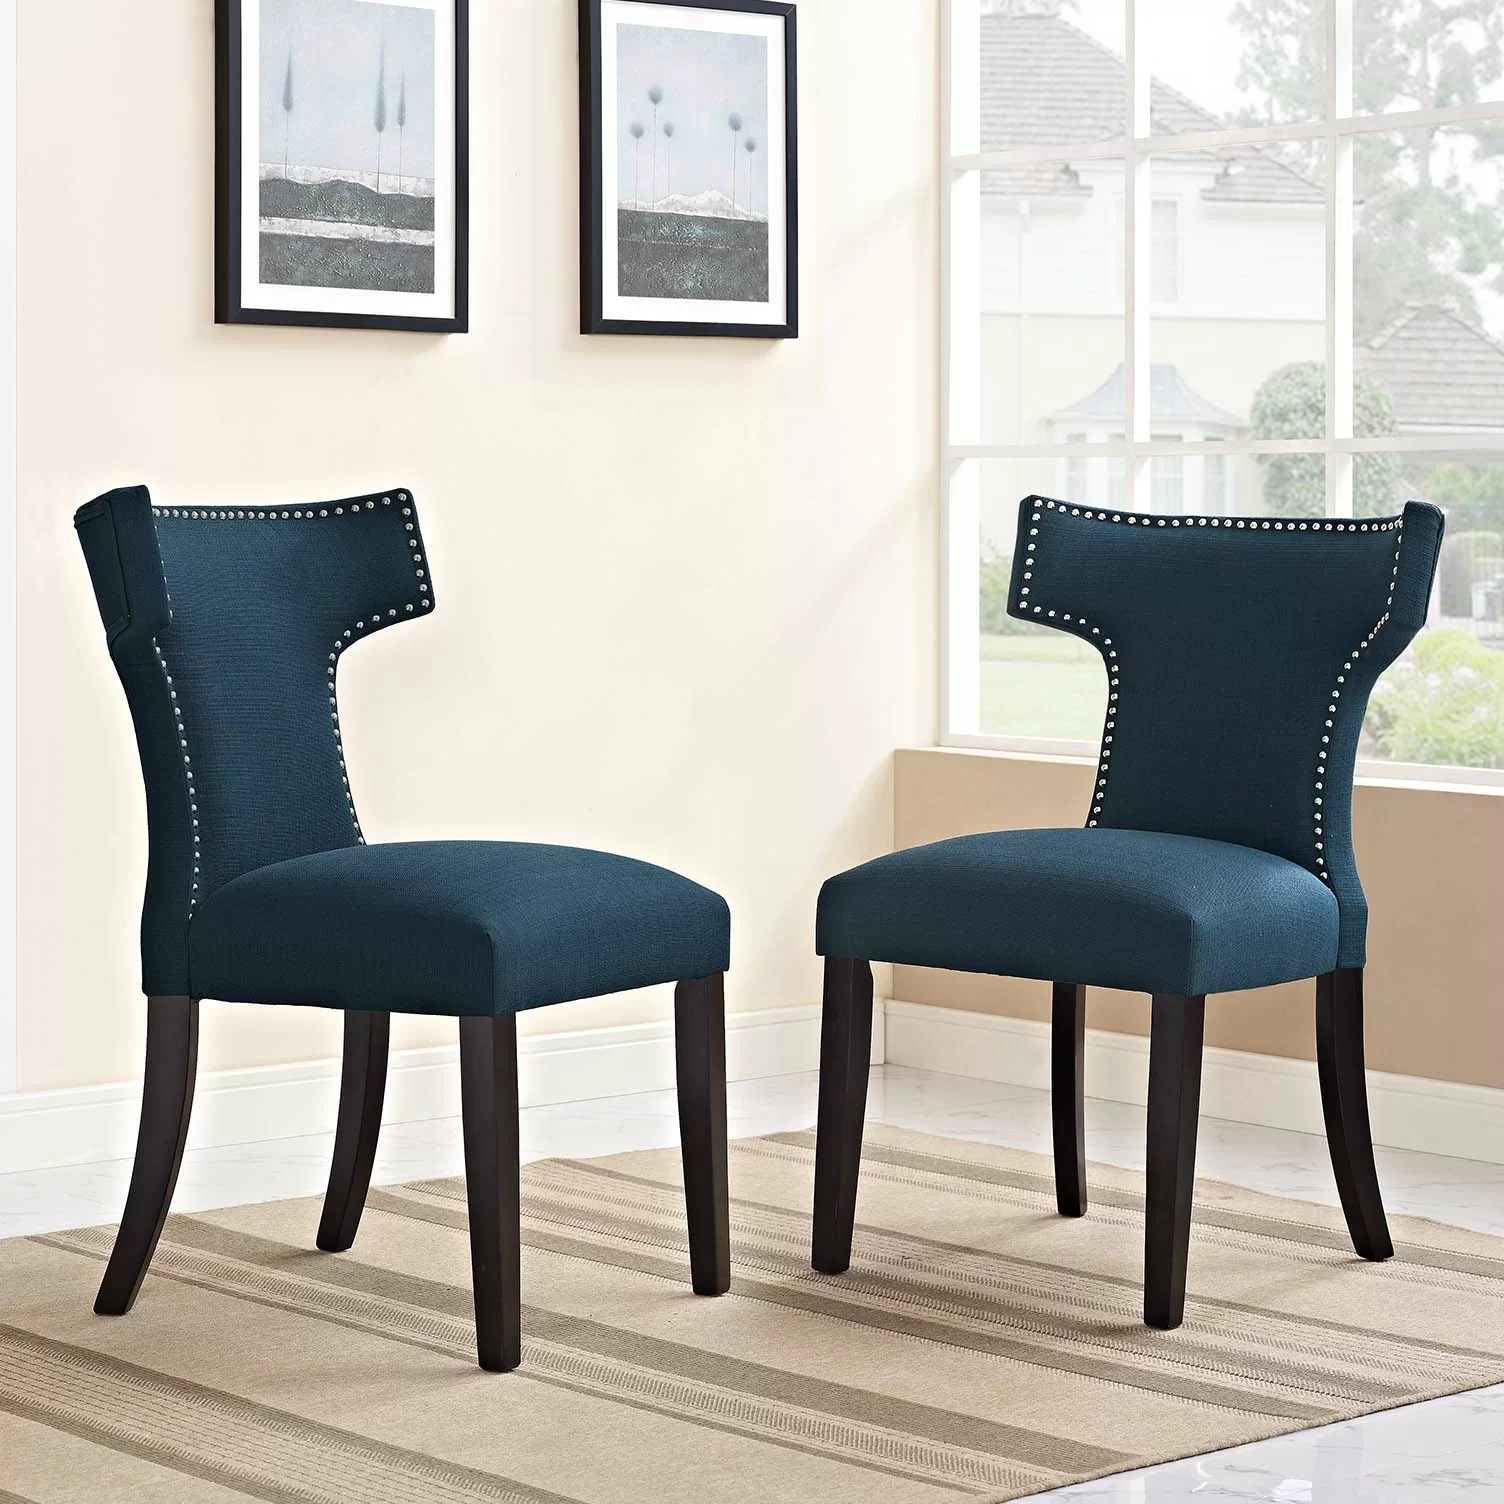 Studded Dining Chairs Curve Upholstered Dining Chair